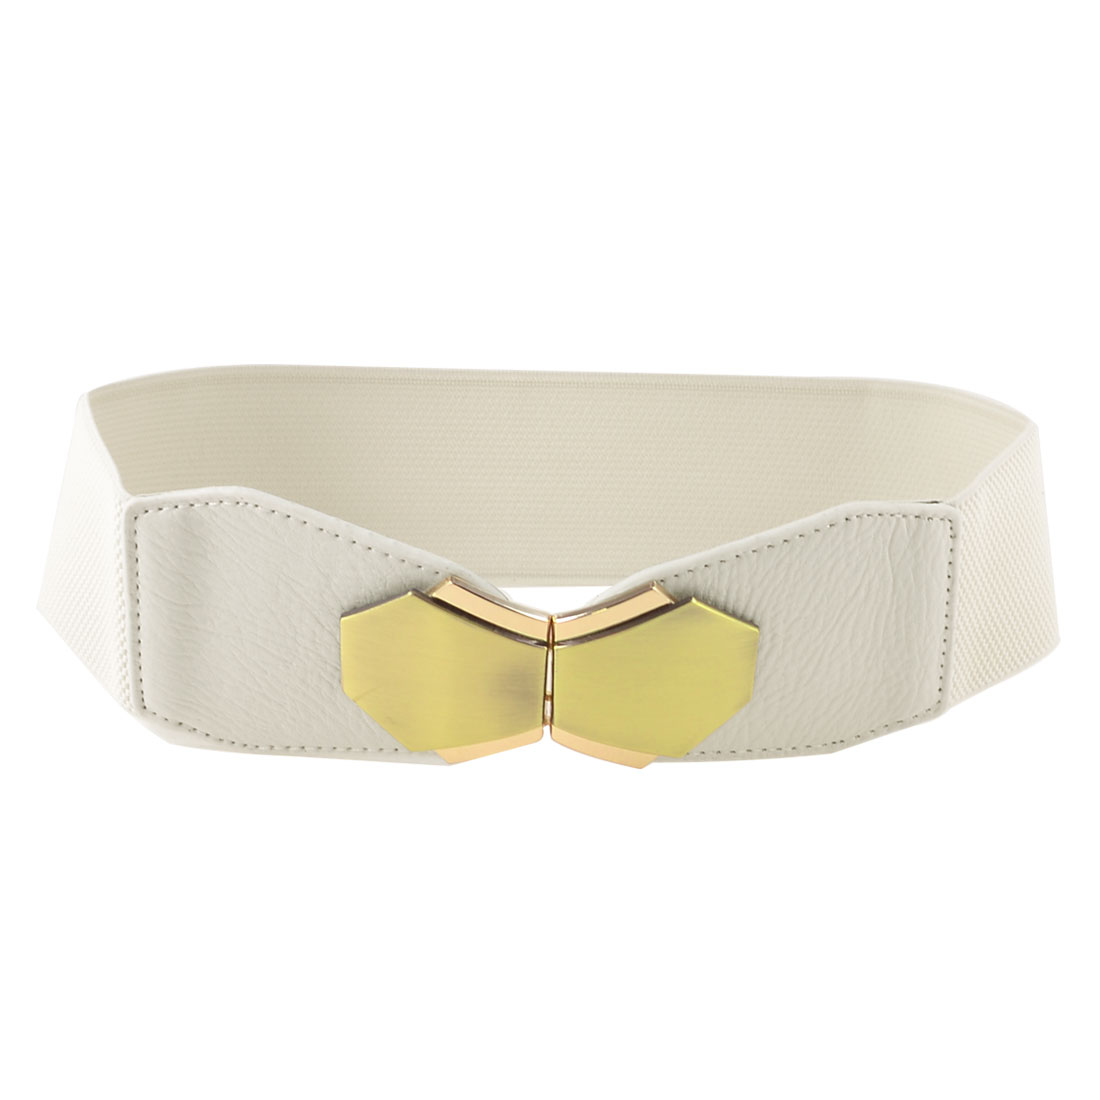 Interlocking Closure White Faux Leather Stretchy Waist Cinch Belt for Women